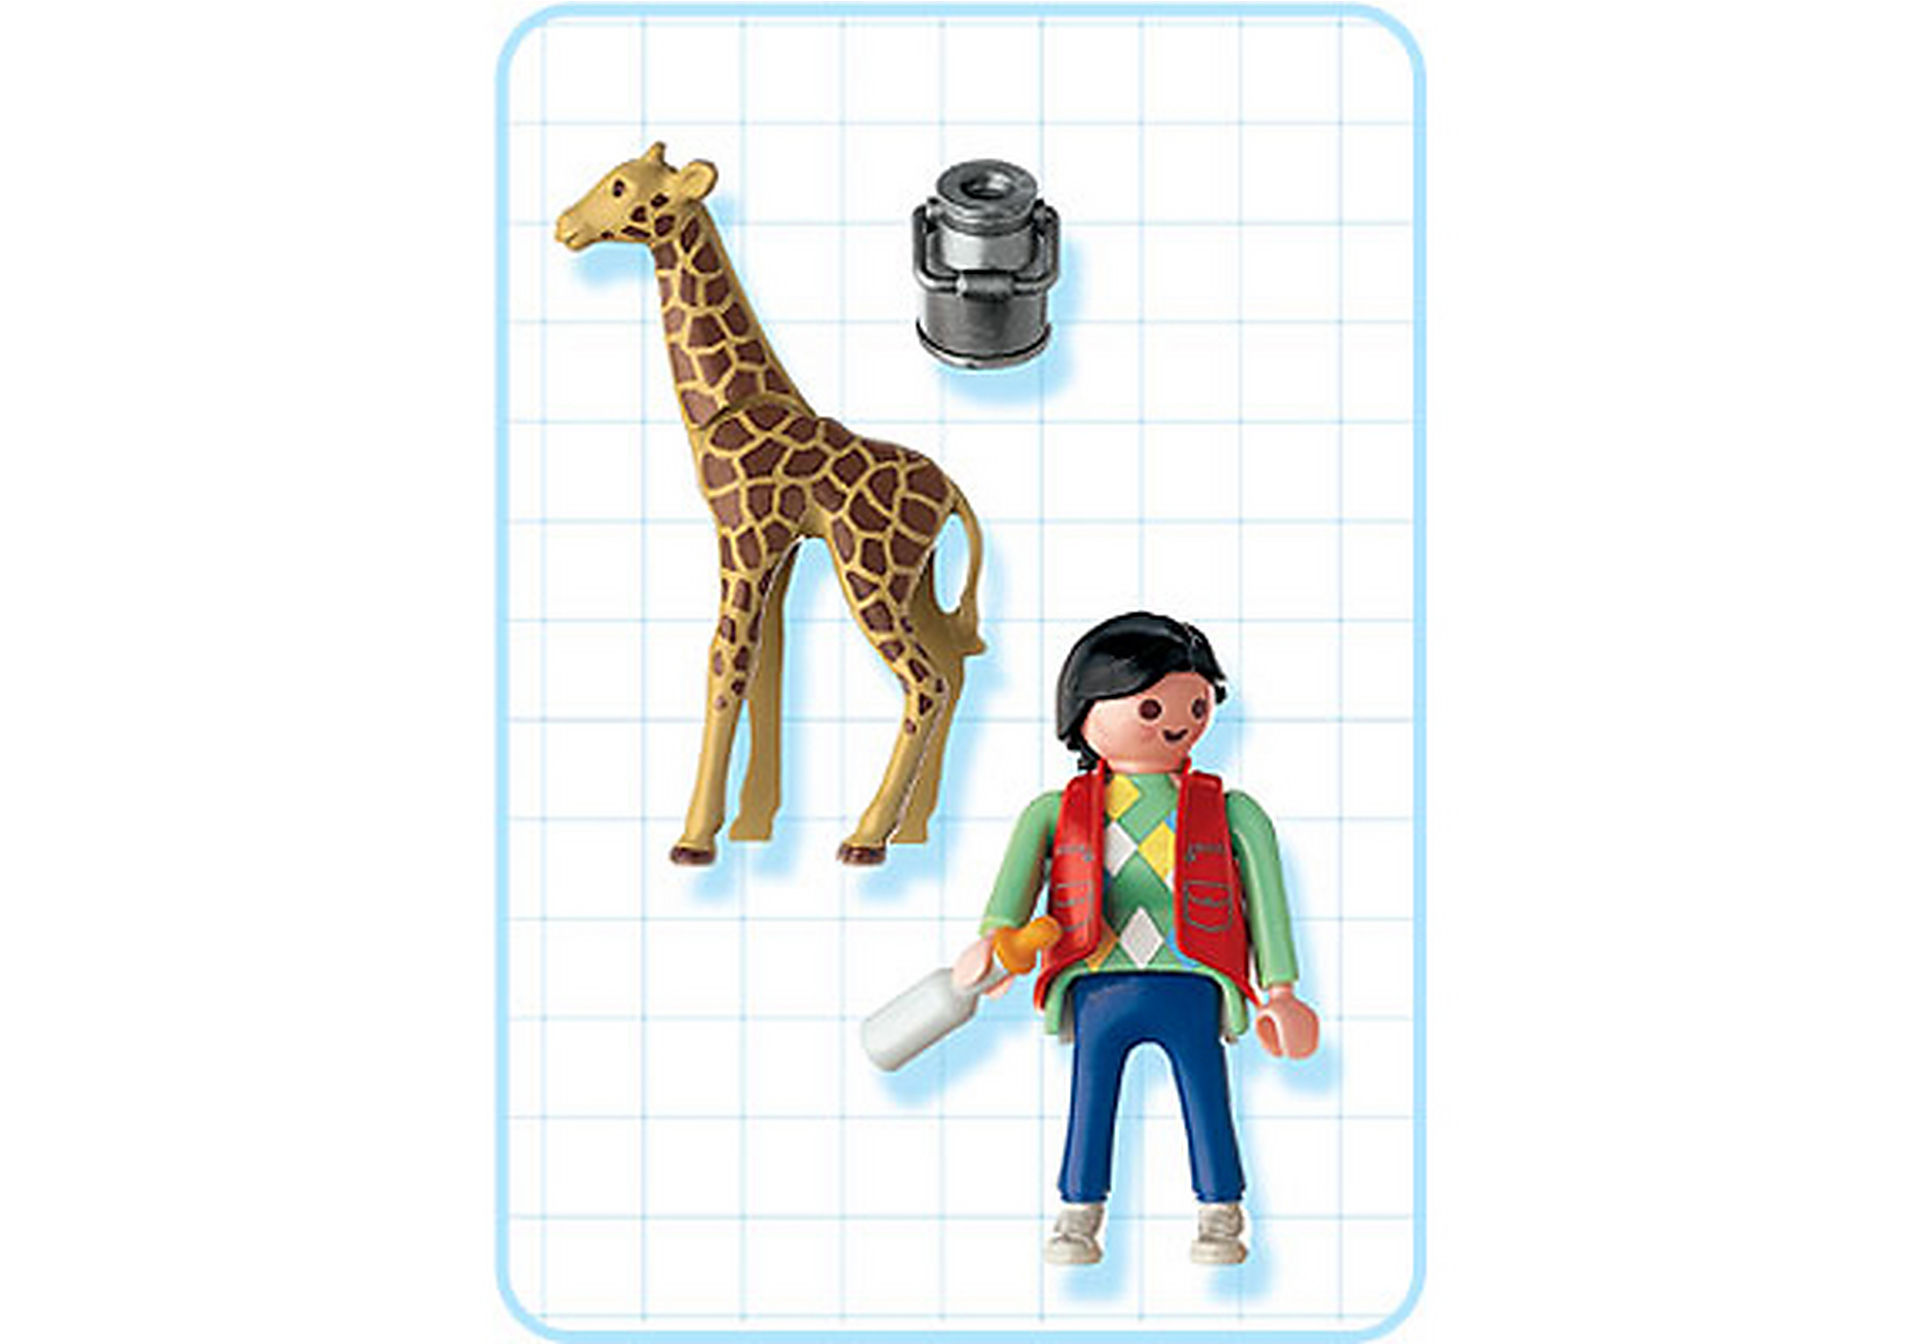 http://media.playmobil.com/i/playmobil/3253-B_product_box_back/Babygiraffe/Pflegerin